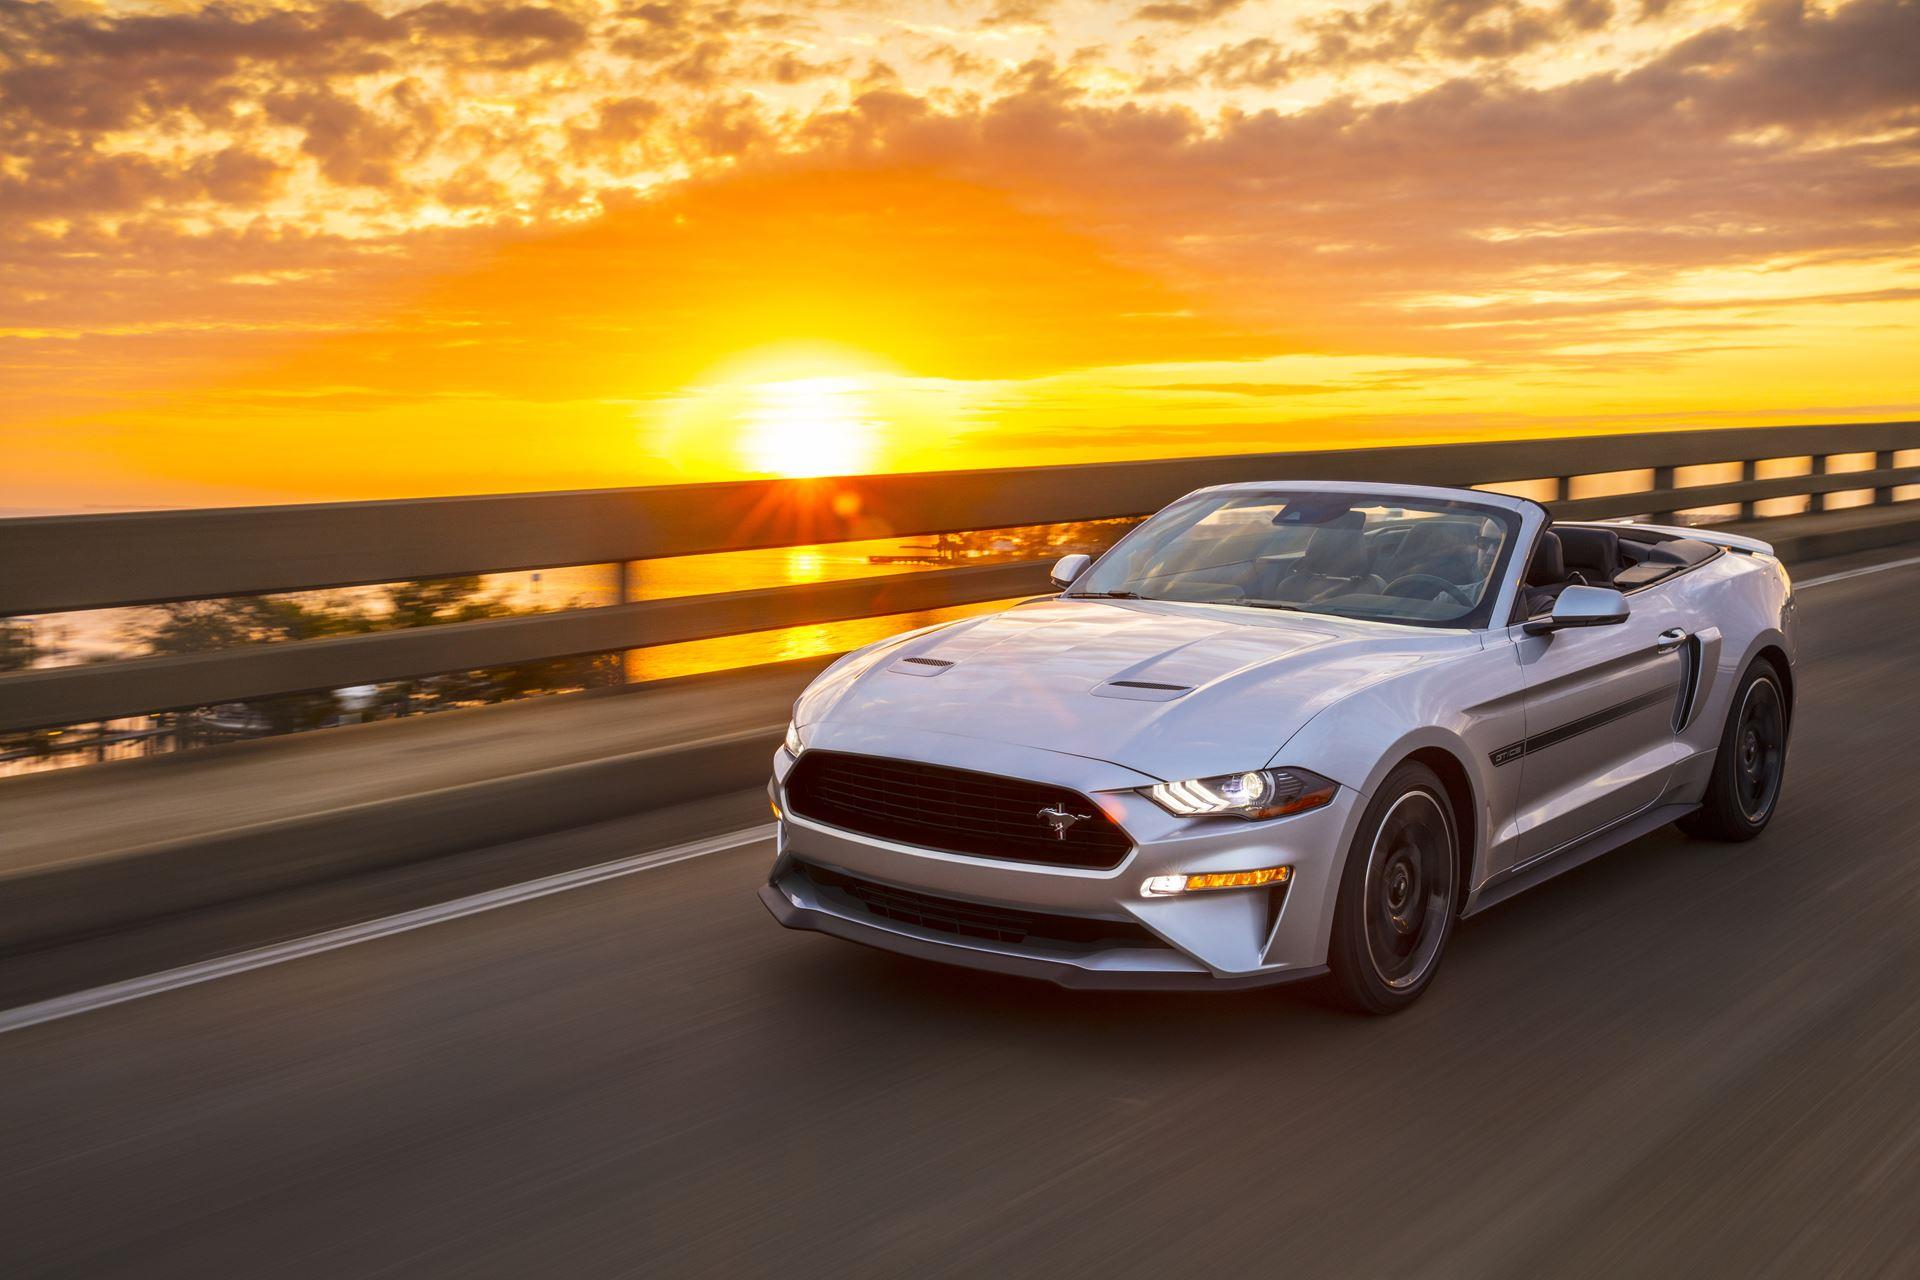 Ford Mustang GT California Special photo